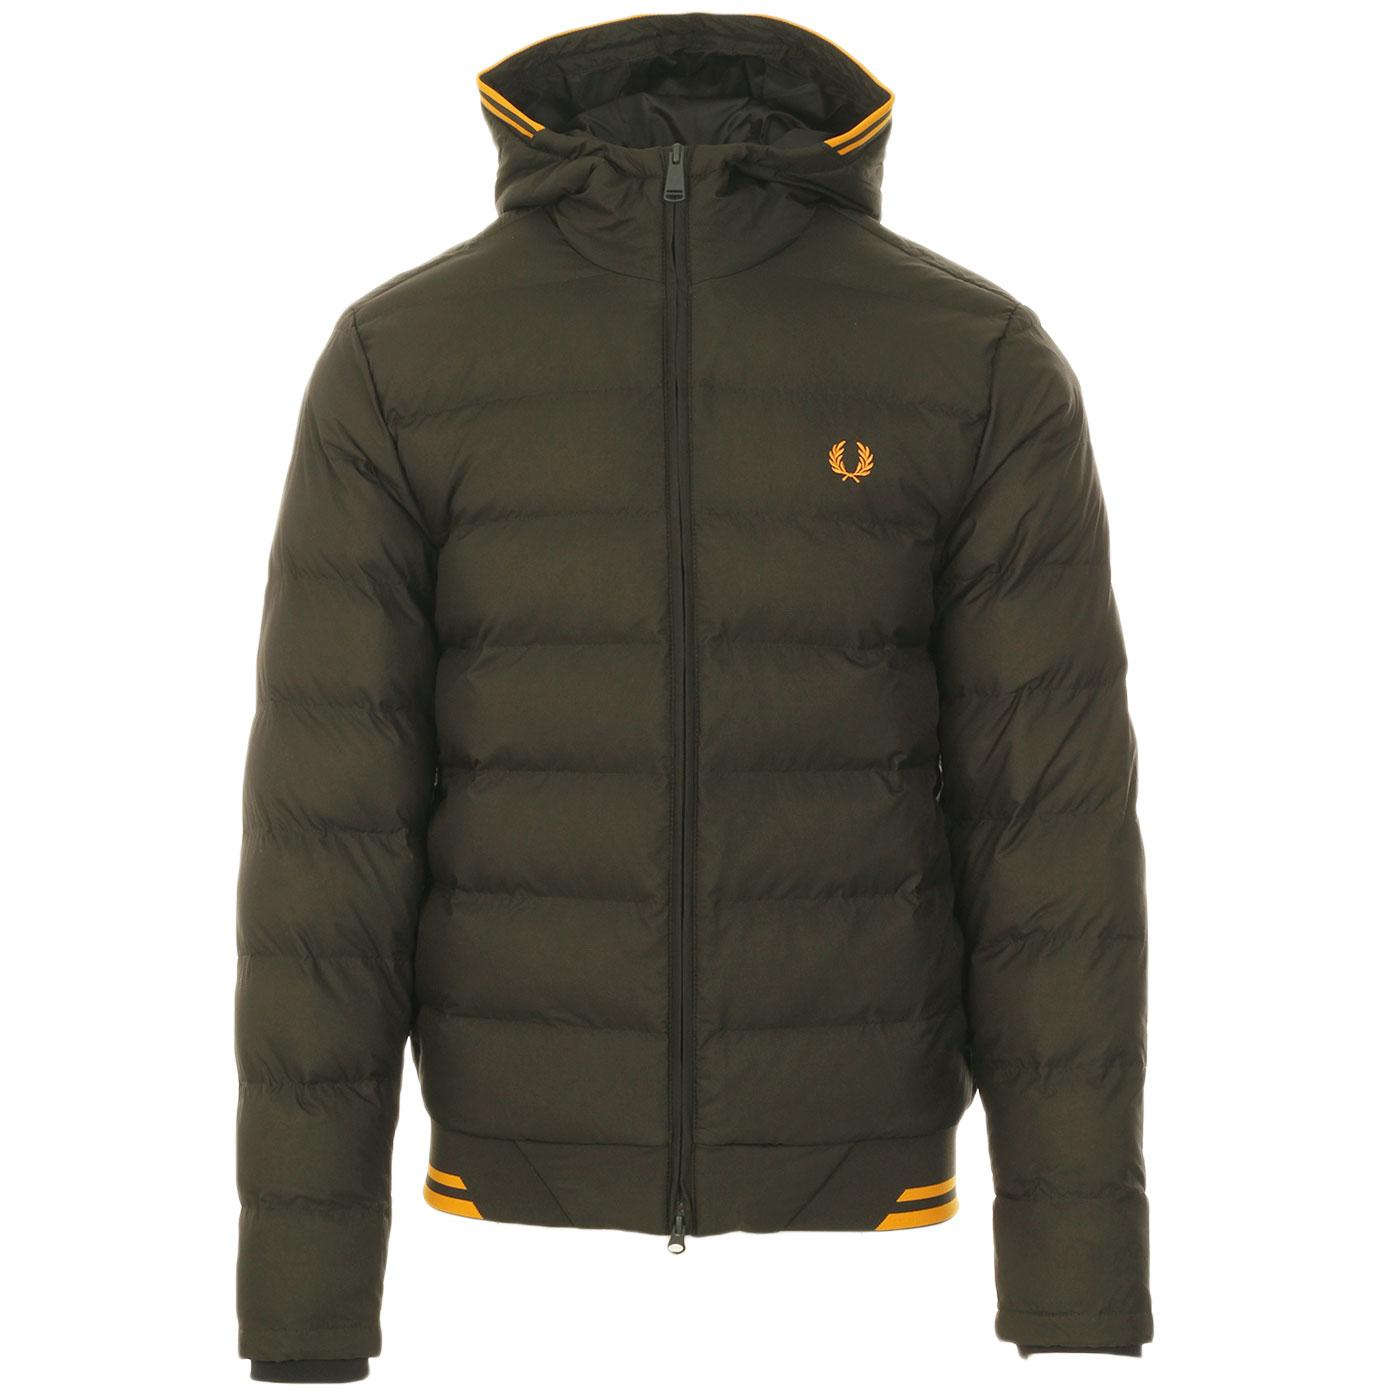 FRED PERRY Retro Tipped Hooded Puffer Jacket (HG)